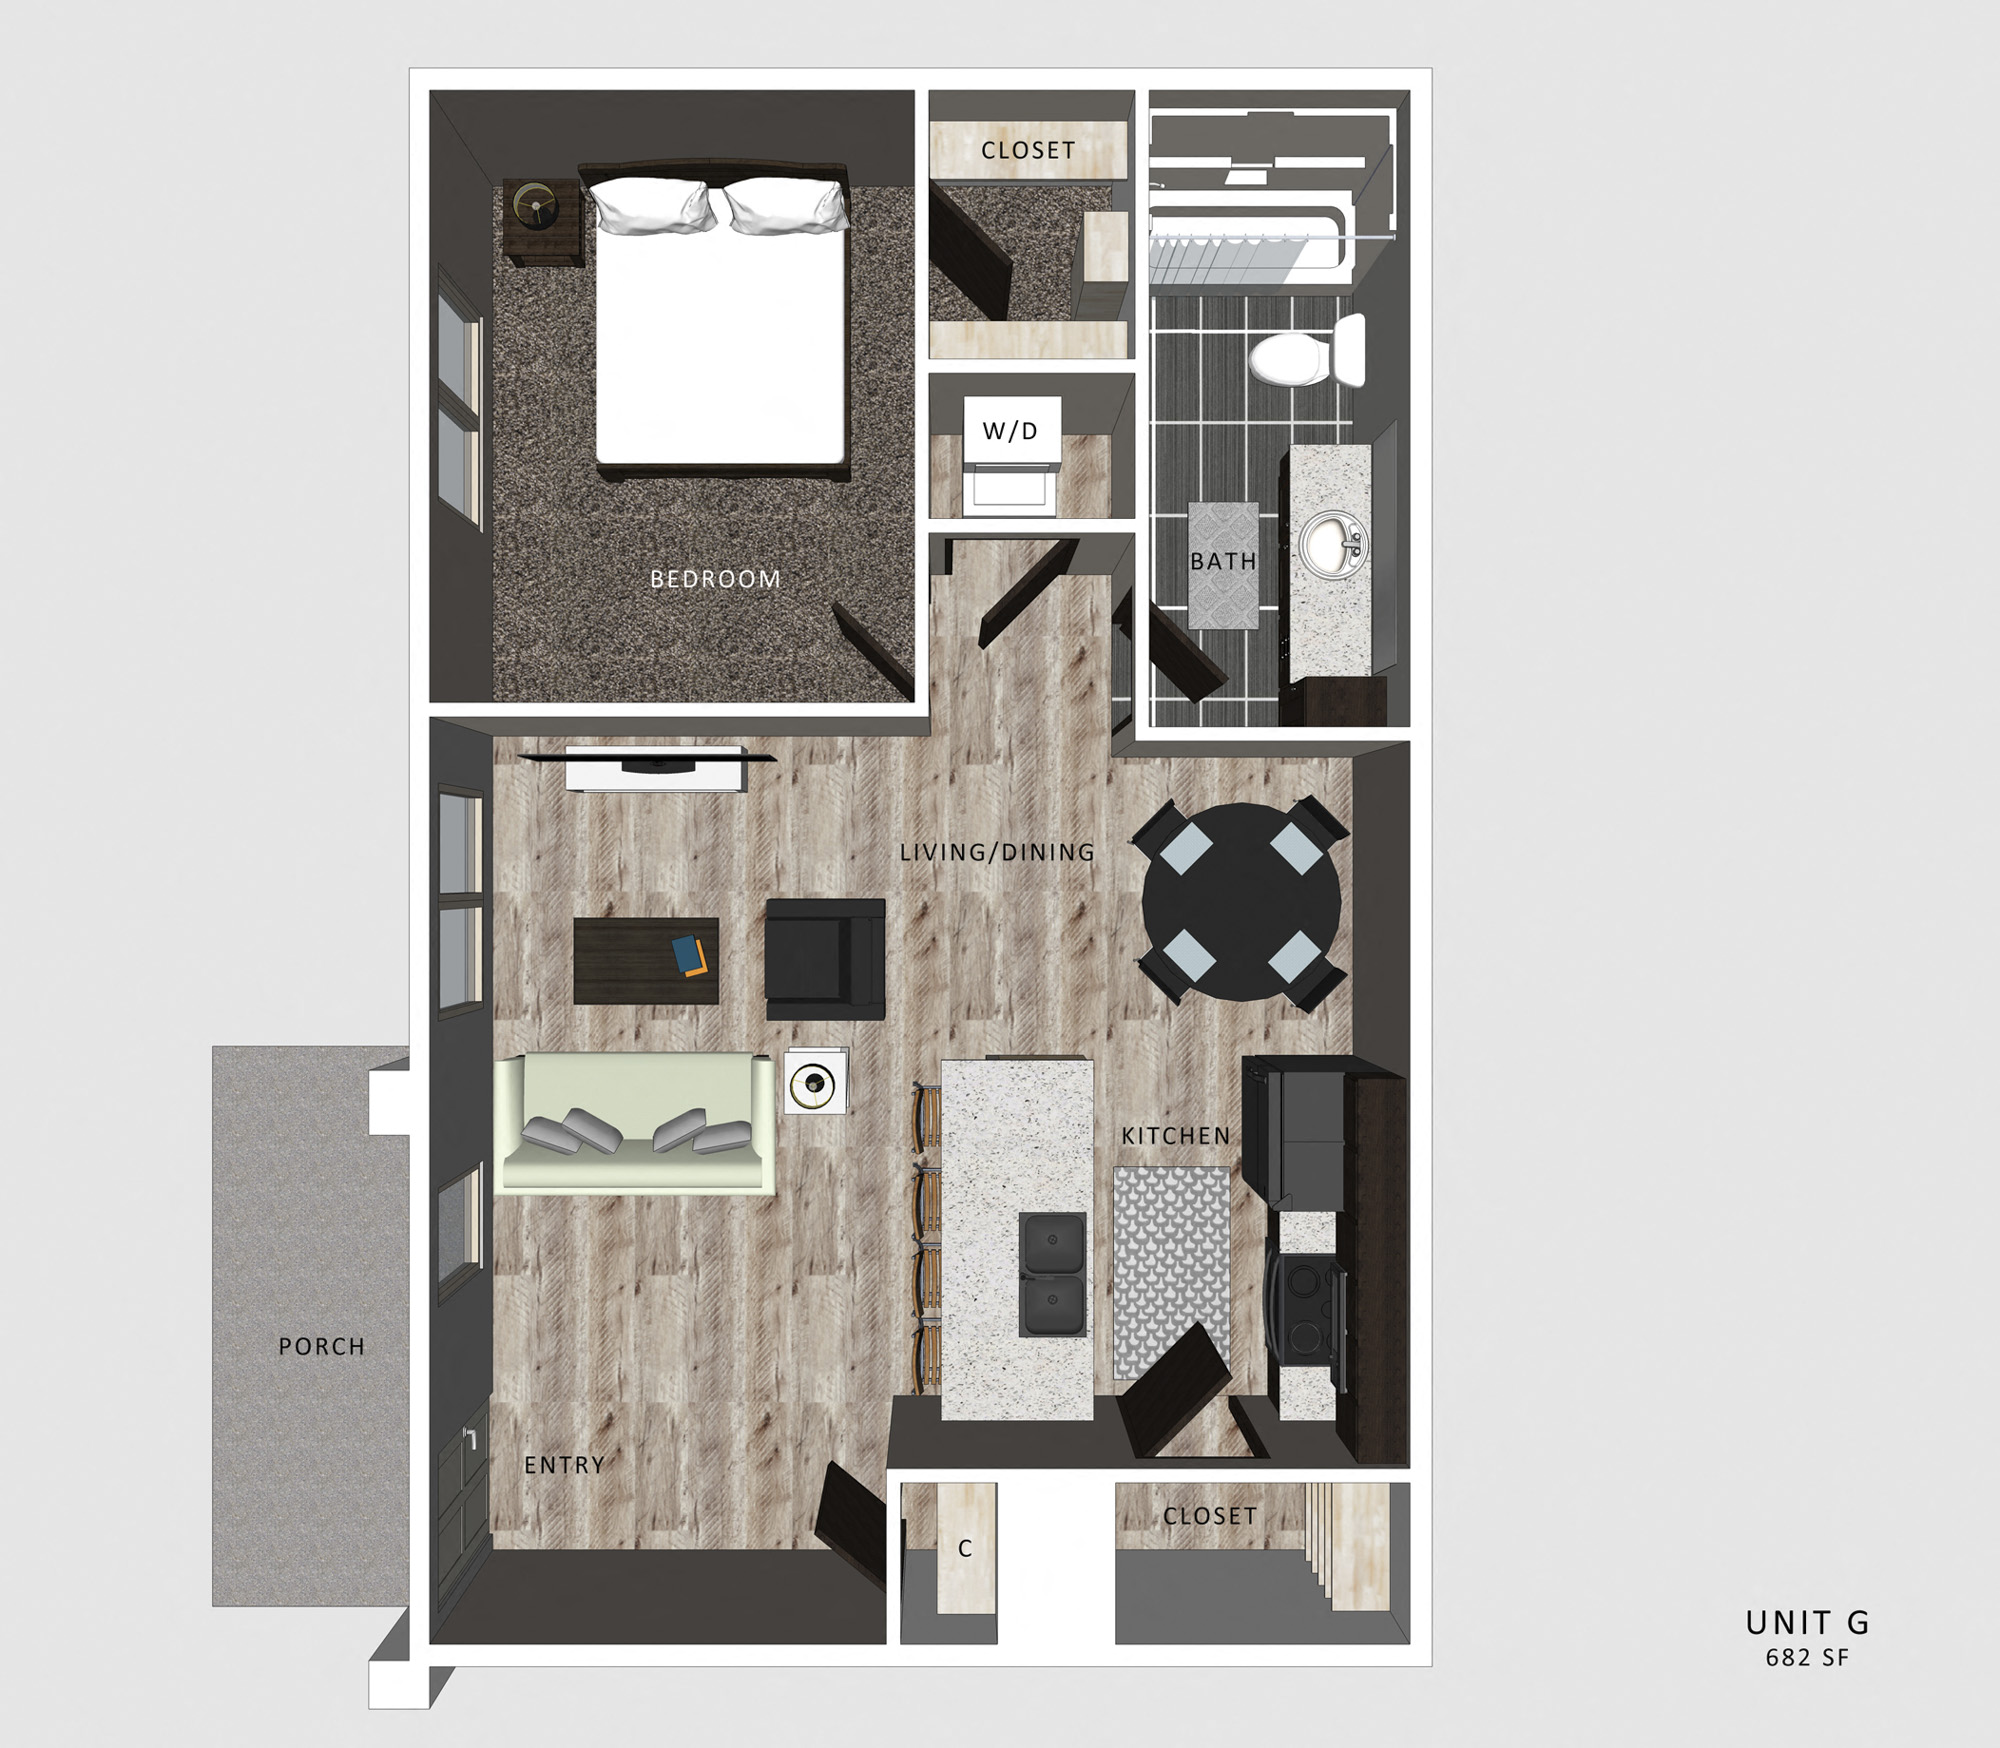 Floor Plans Of North Pointe Villas In Lincoln Ne